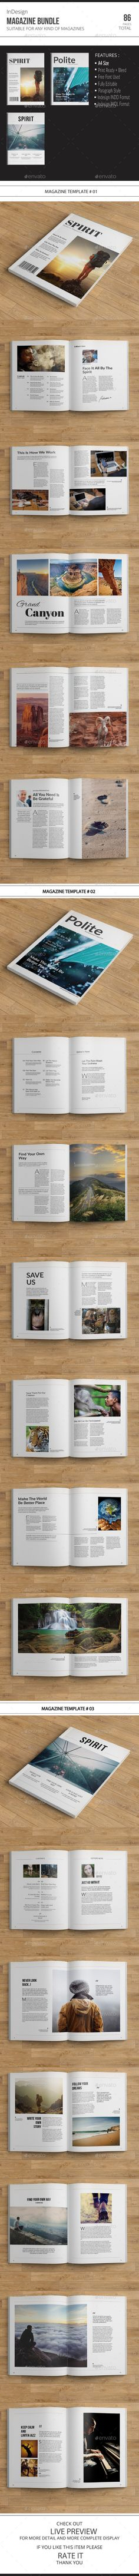 northern beaches christian school multipurpose hall indesign interior indesign magazine bundle #magazine #clean #print #printdesign  #graphicdesign #template #art #design #indesign #brochure #professional  #designers